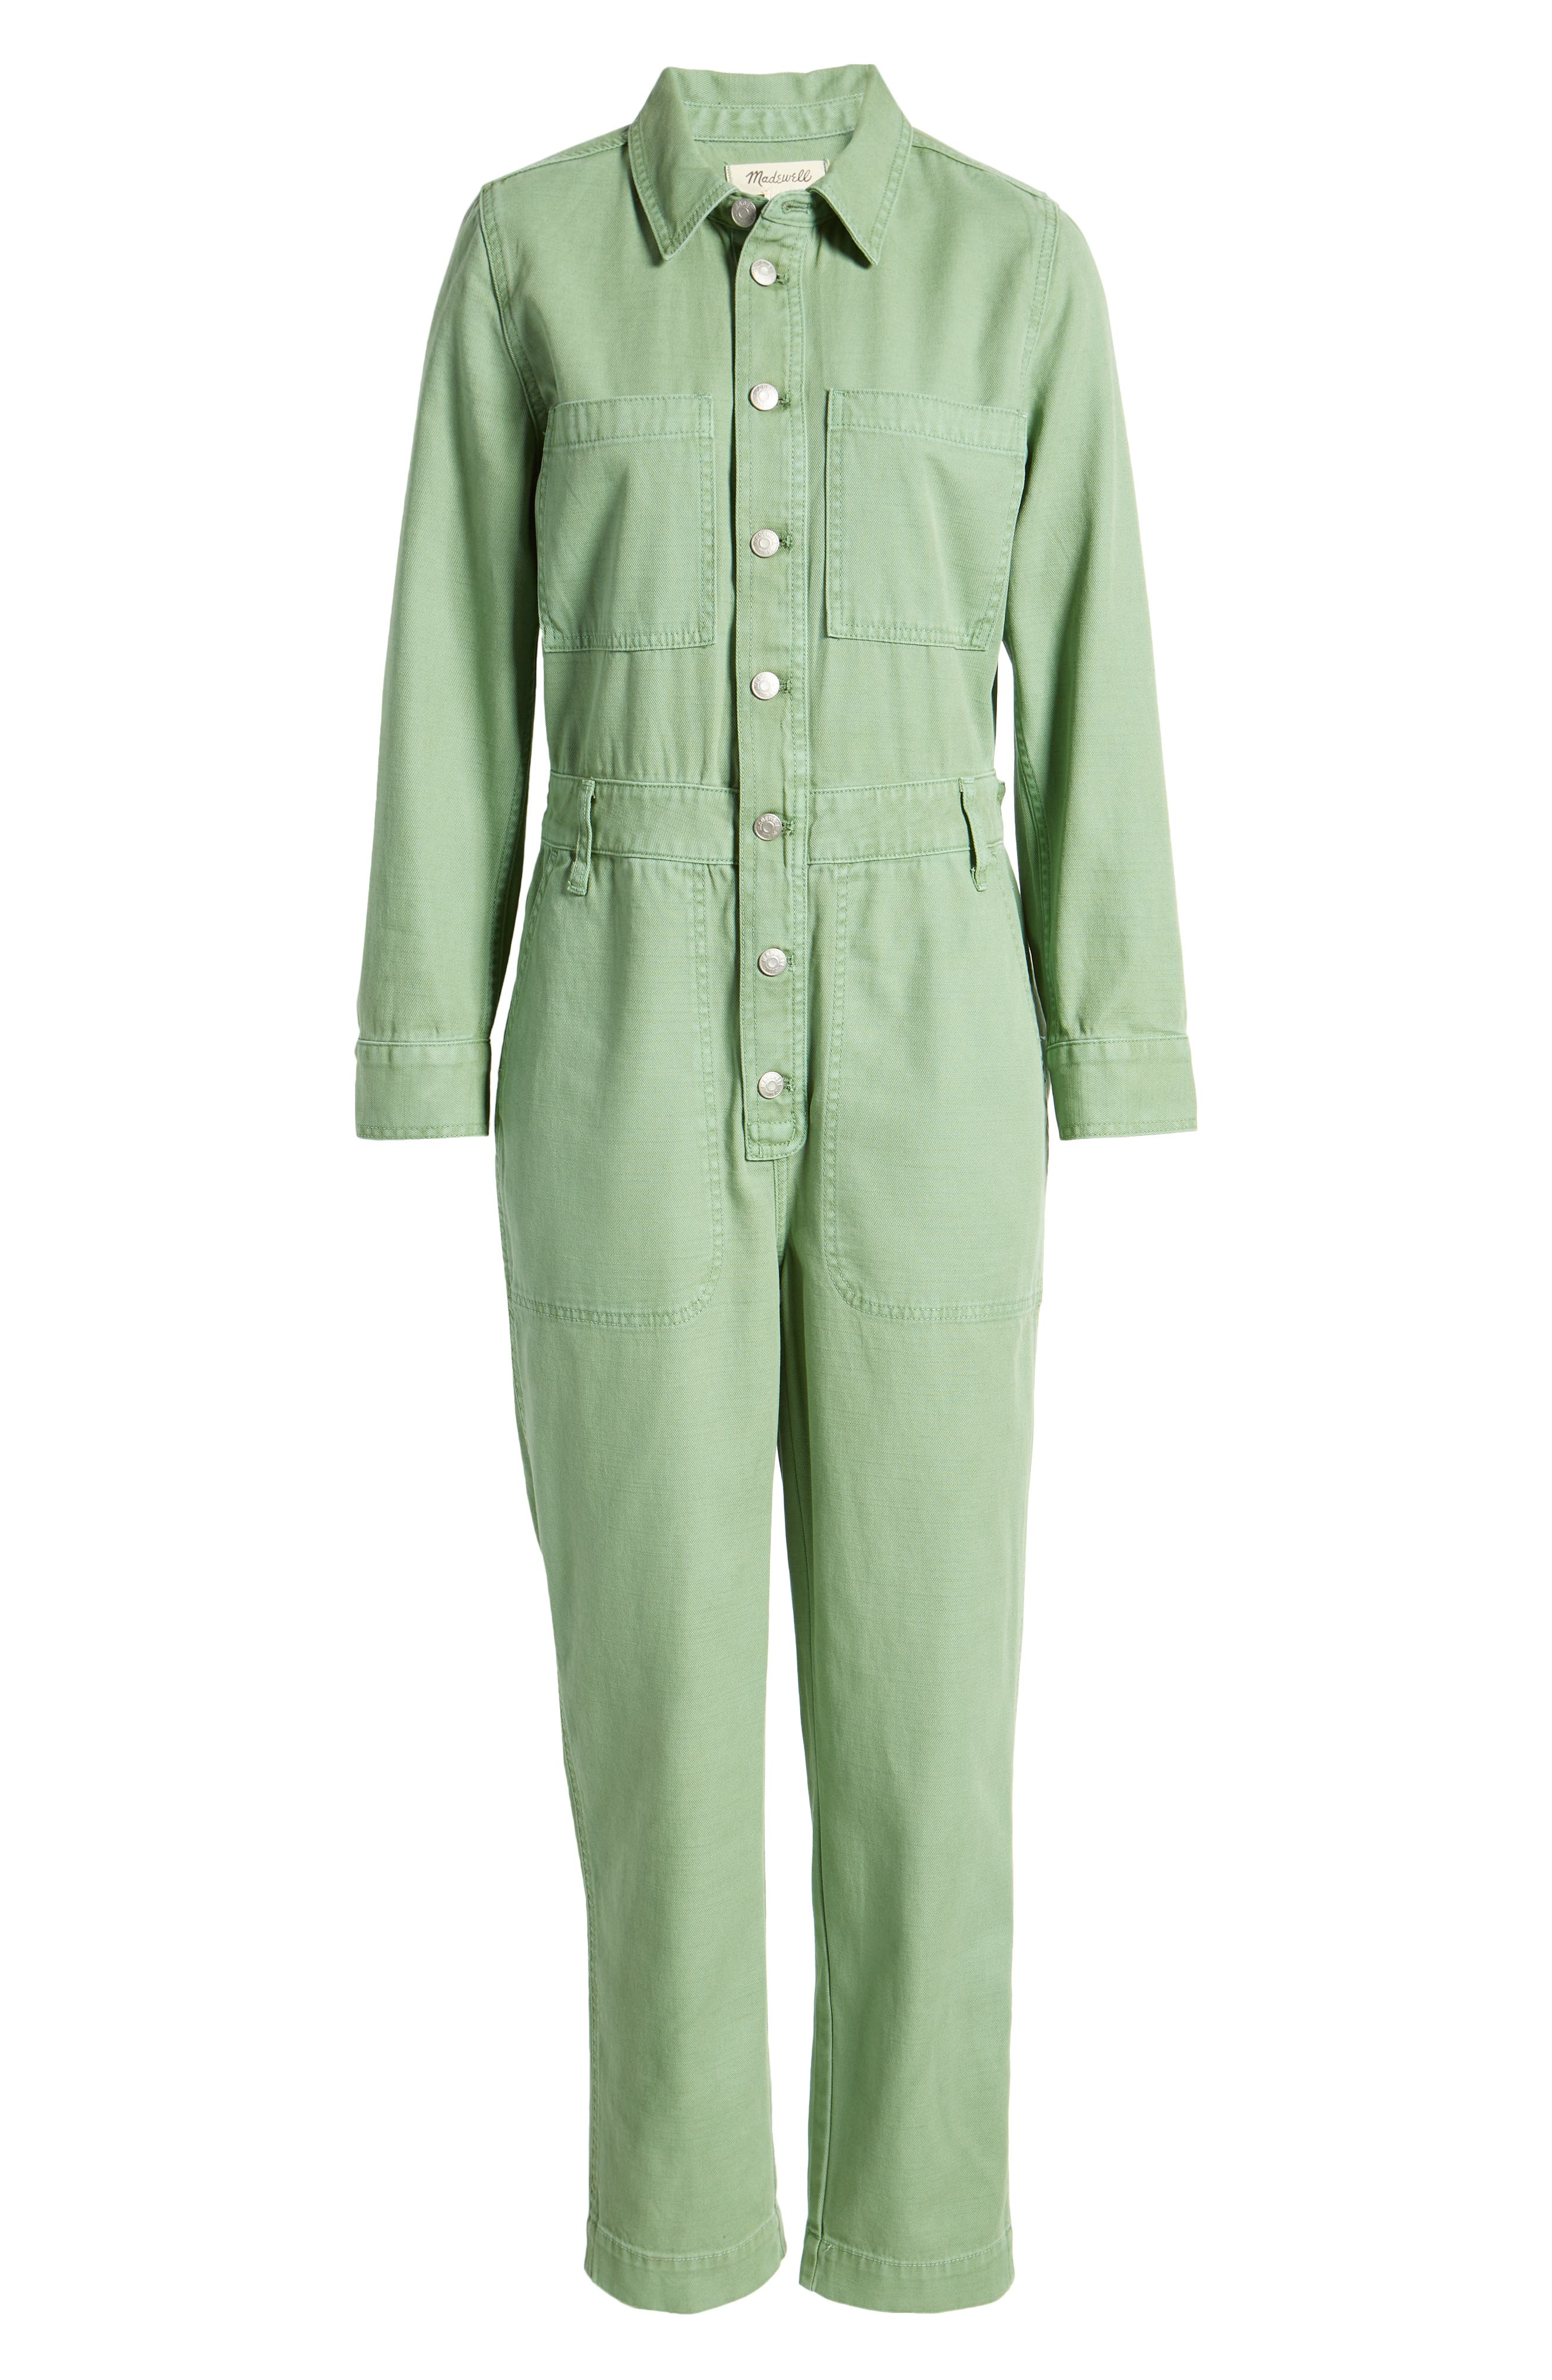 Rosie the Riveter Costume & Outfit Ideas Womens Madewell WomenS Garment Dyed Relaxed Coverall Jumpsuit Size Large - Ivory $148.00 AT vintagedancer.com